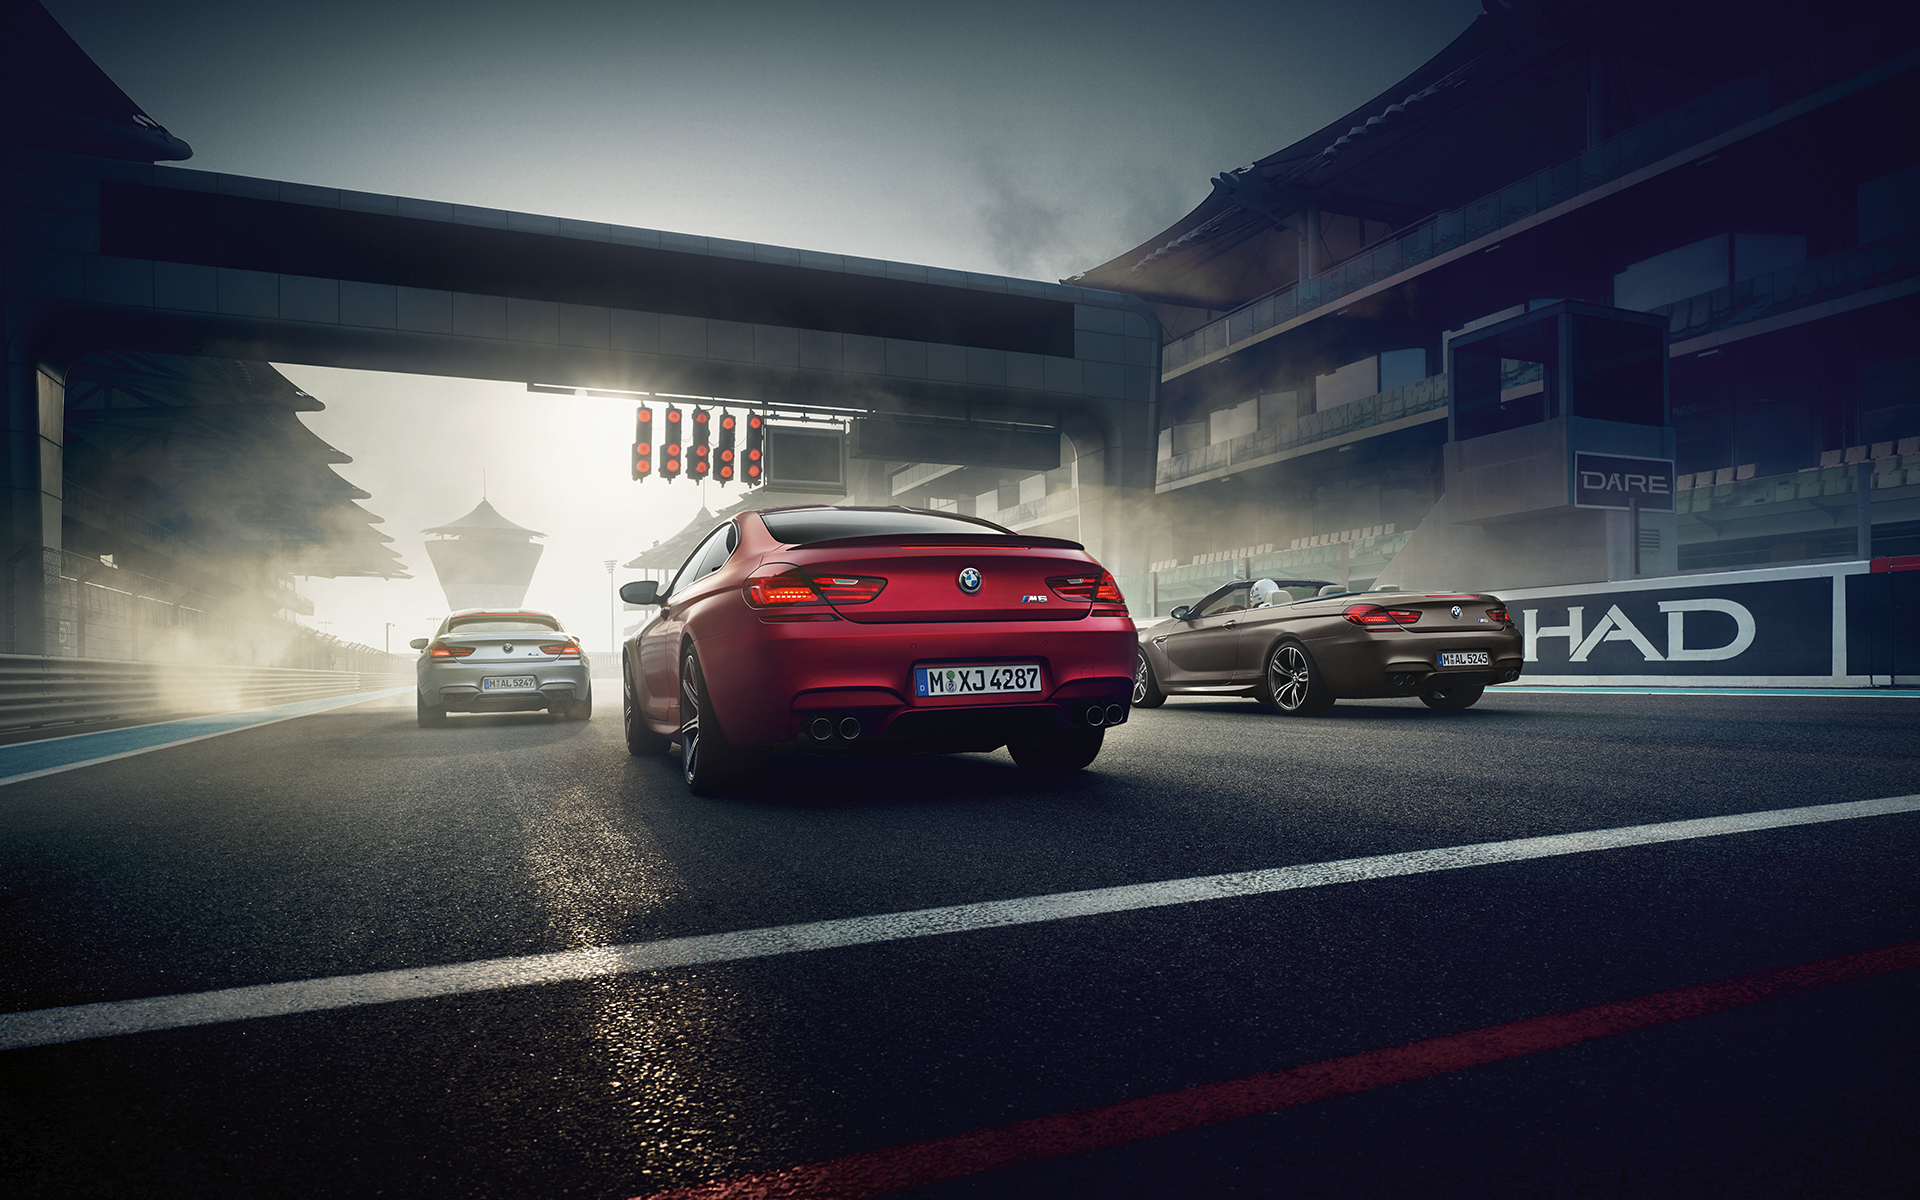 BMW M6 Cabriolet, M4 Coupé and M6 Gran Coupé Rear View